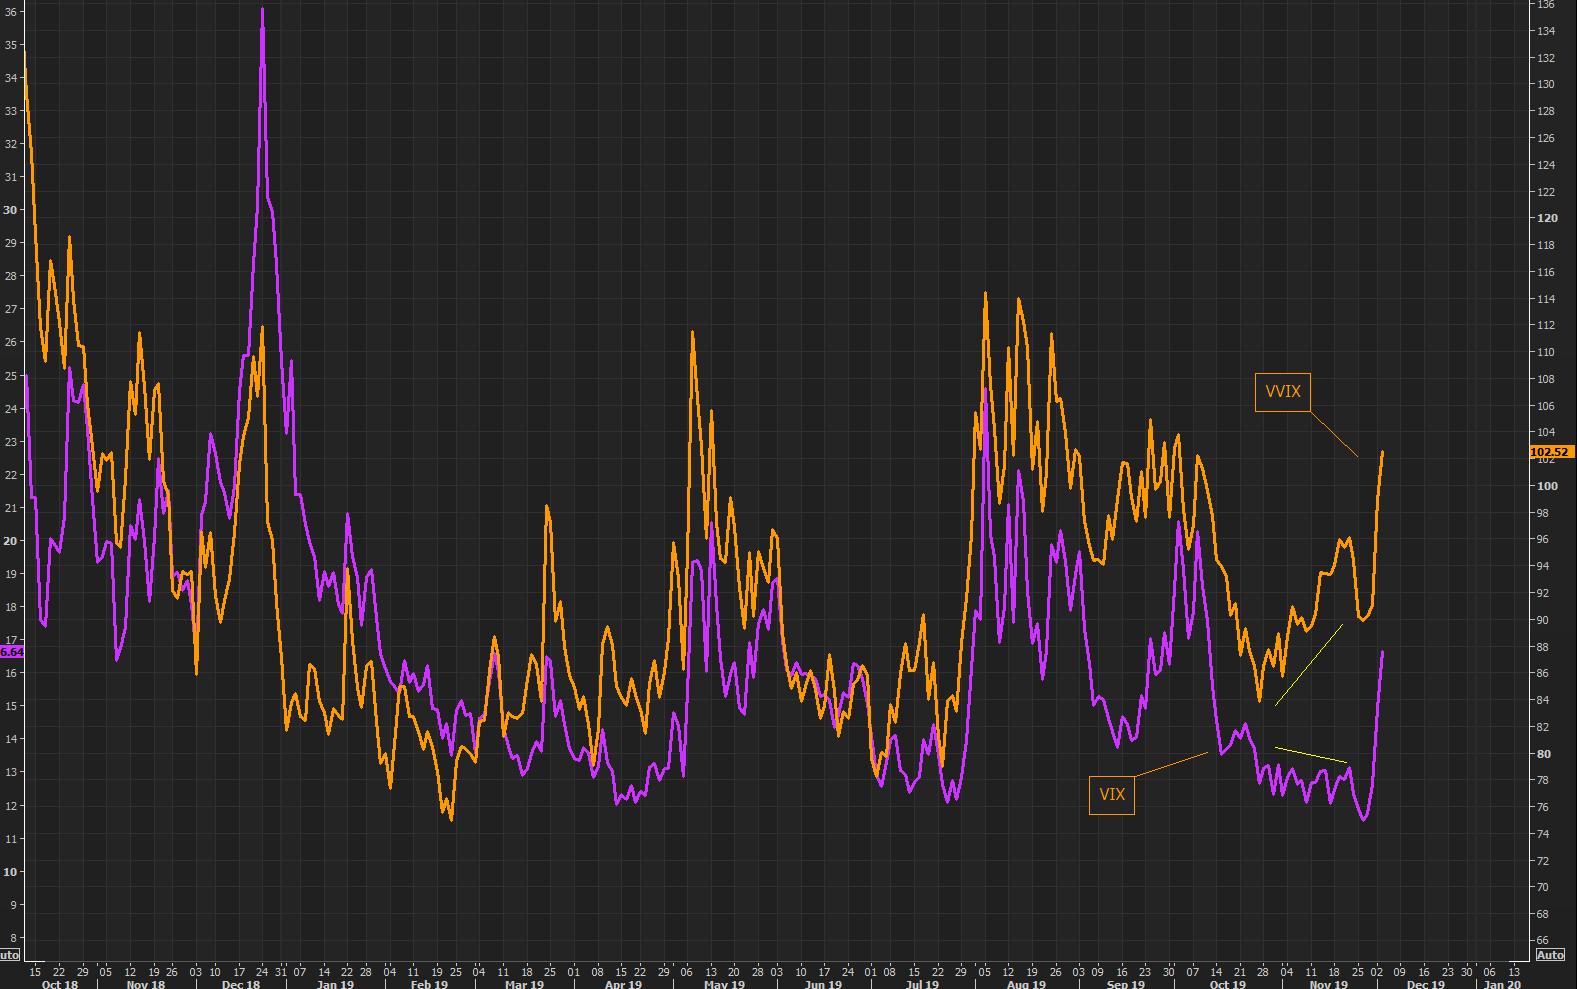 VIX versus VVIX for some perspective